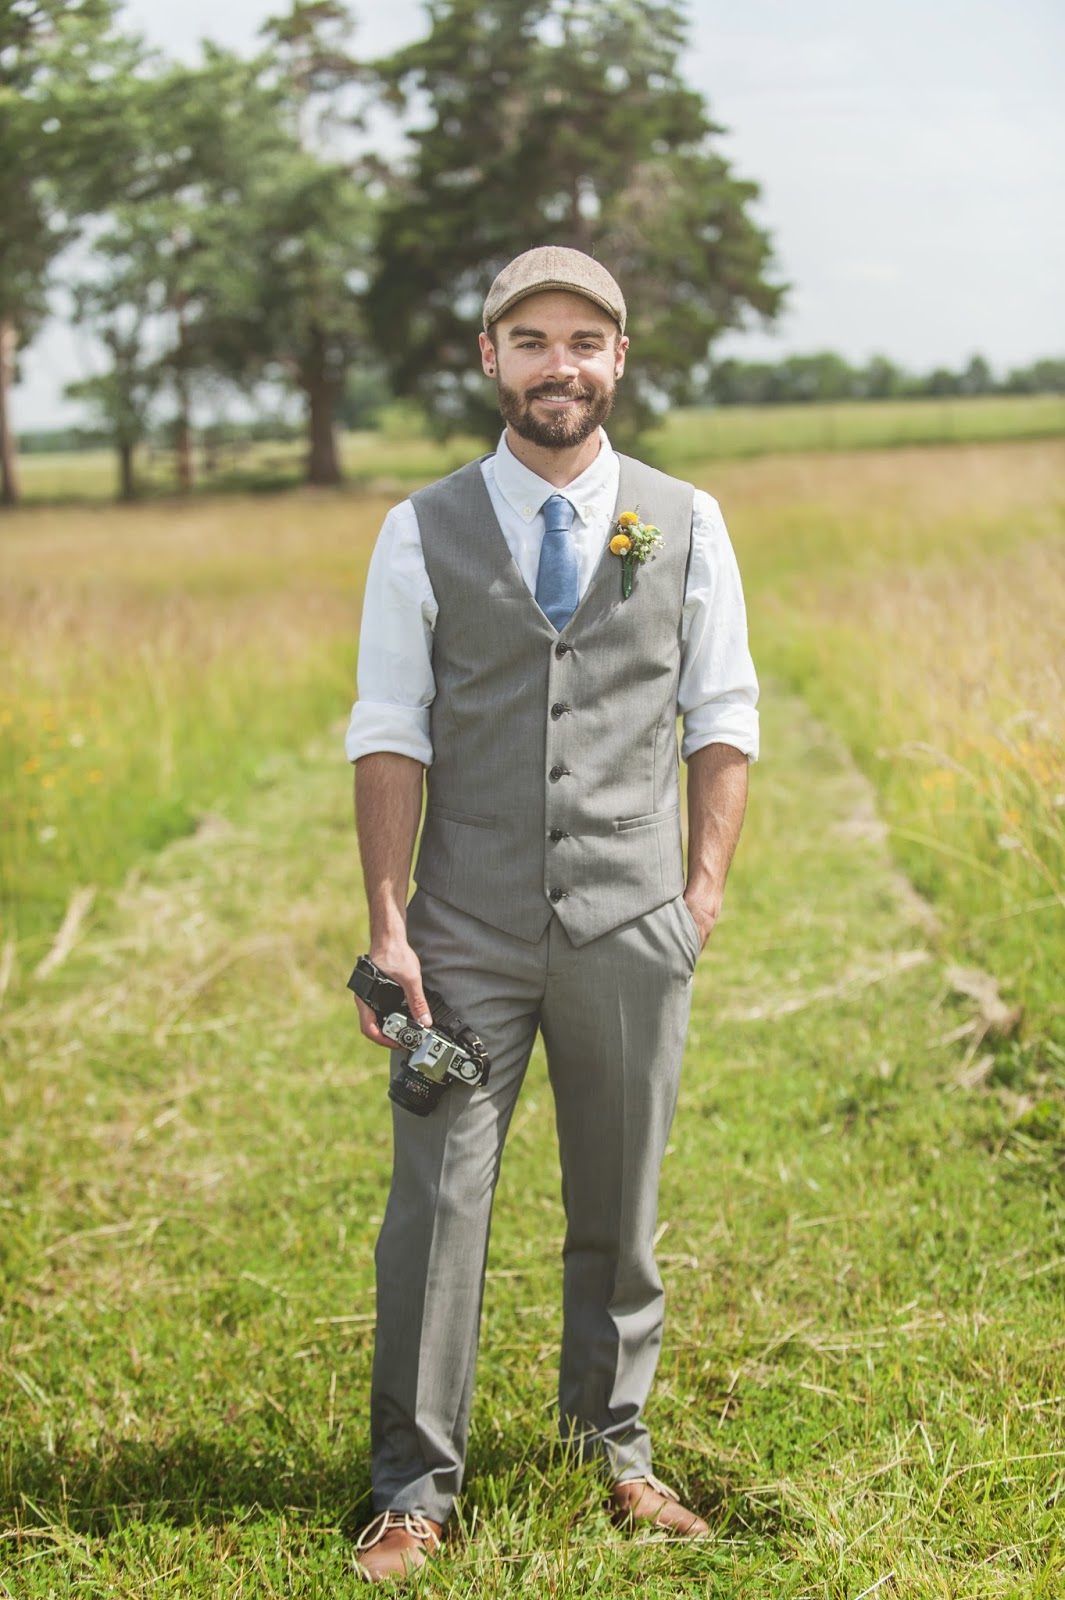 Vintage photographer groom